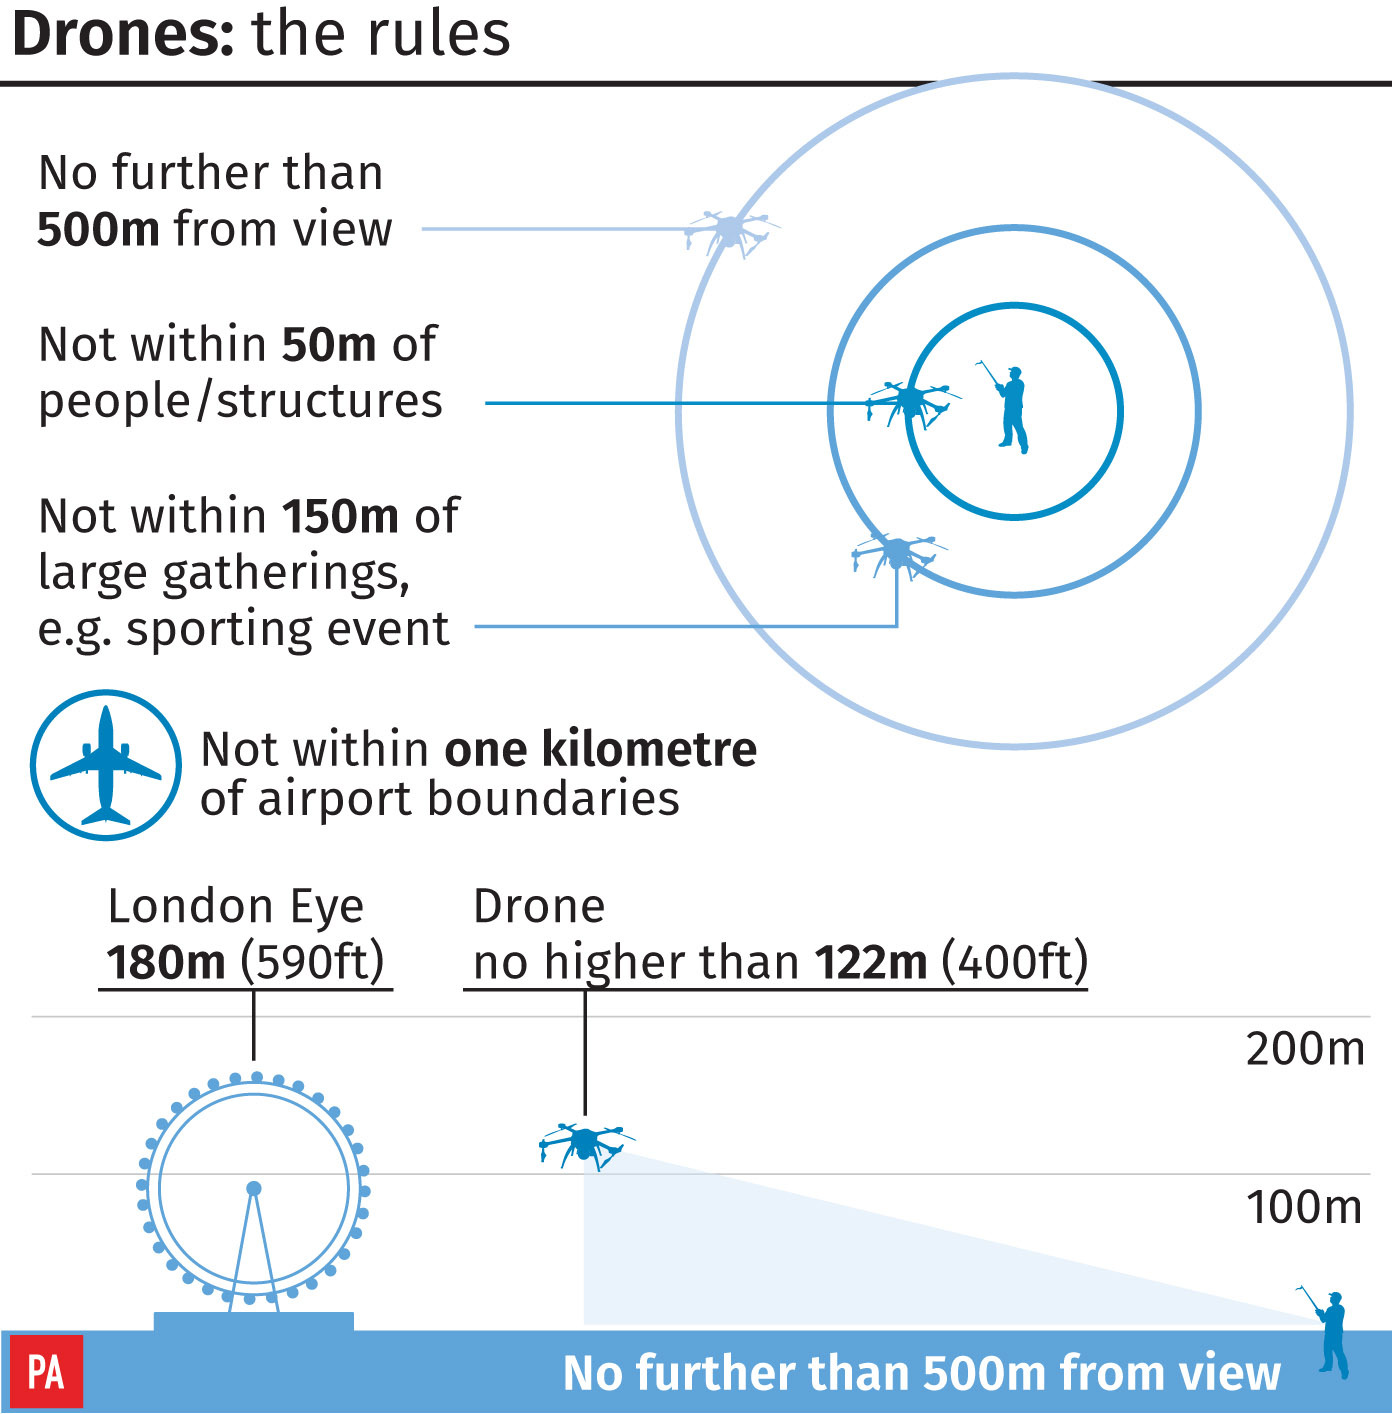 Heathrow airport: Drone sighting halts departures